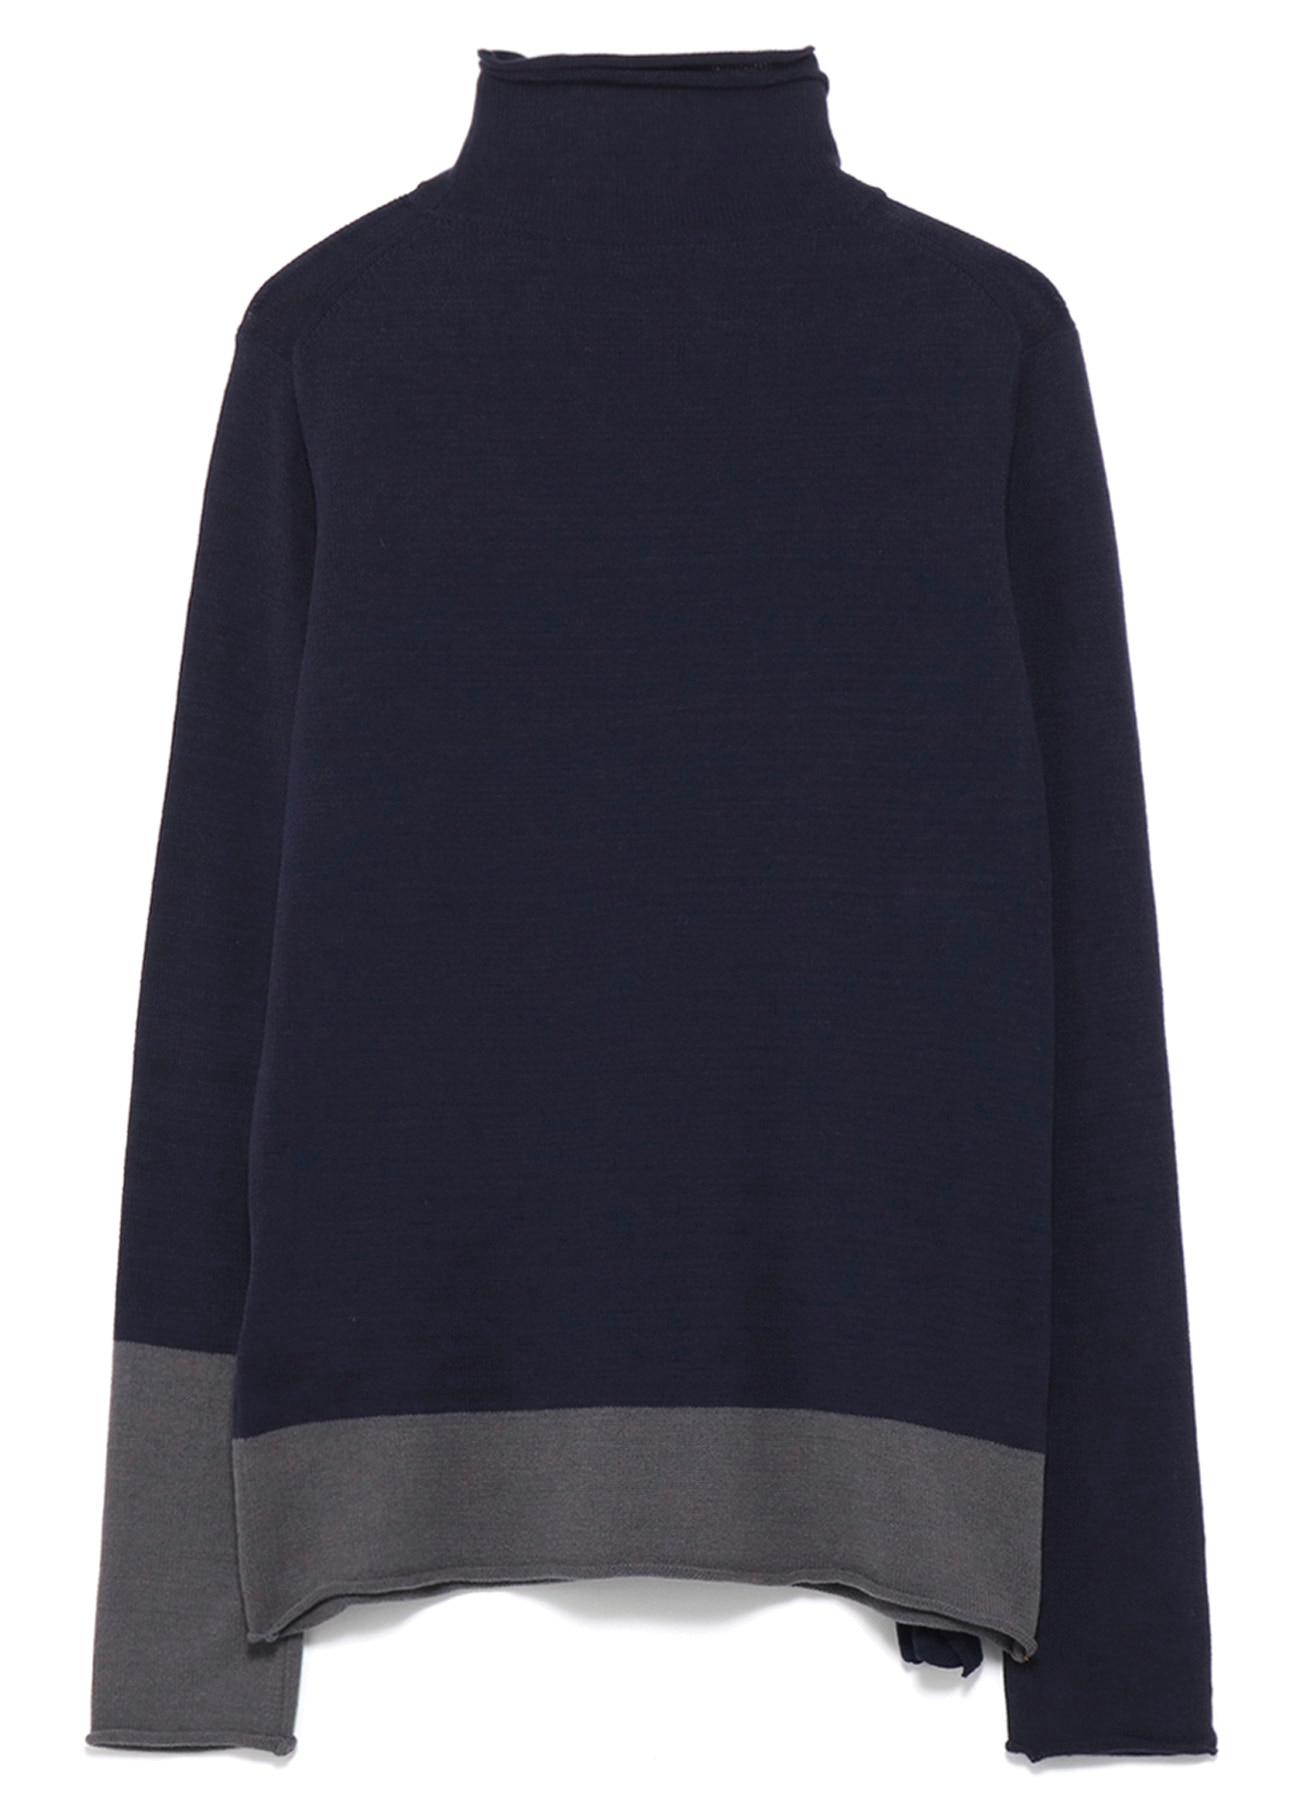 FRONT SLANT DESINED LAYERED NECK KNIT